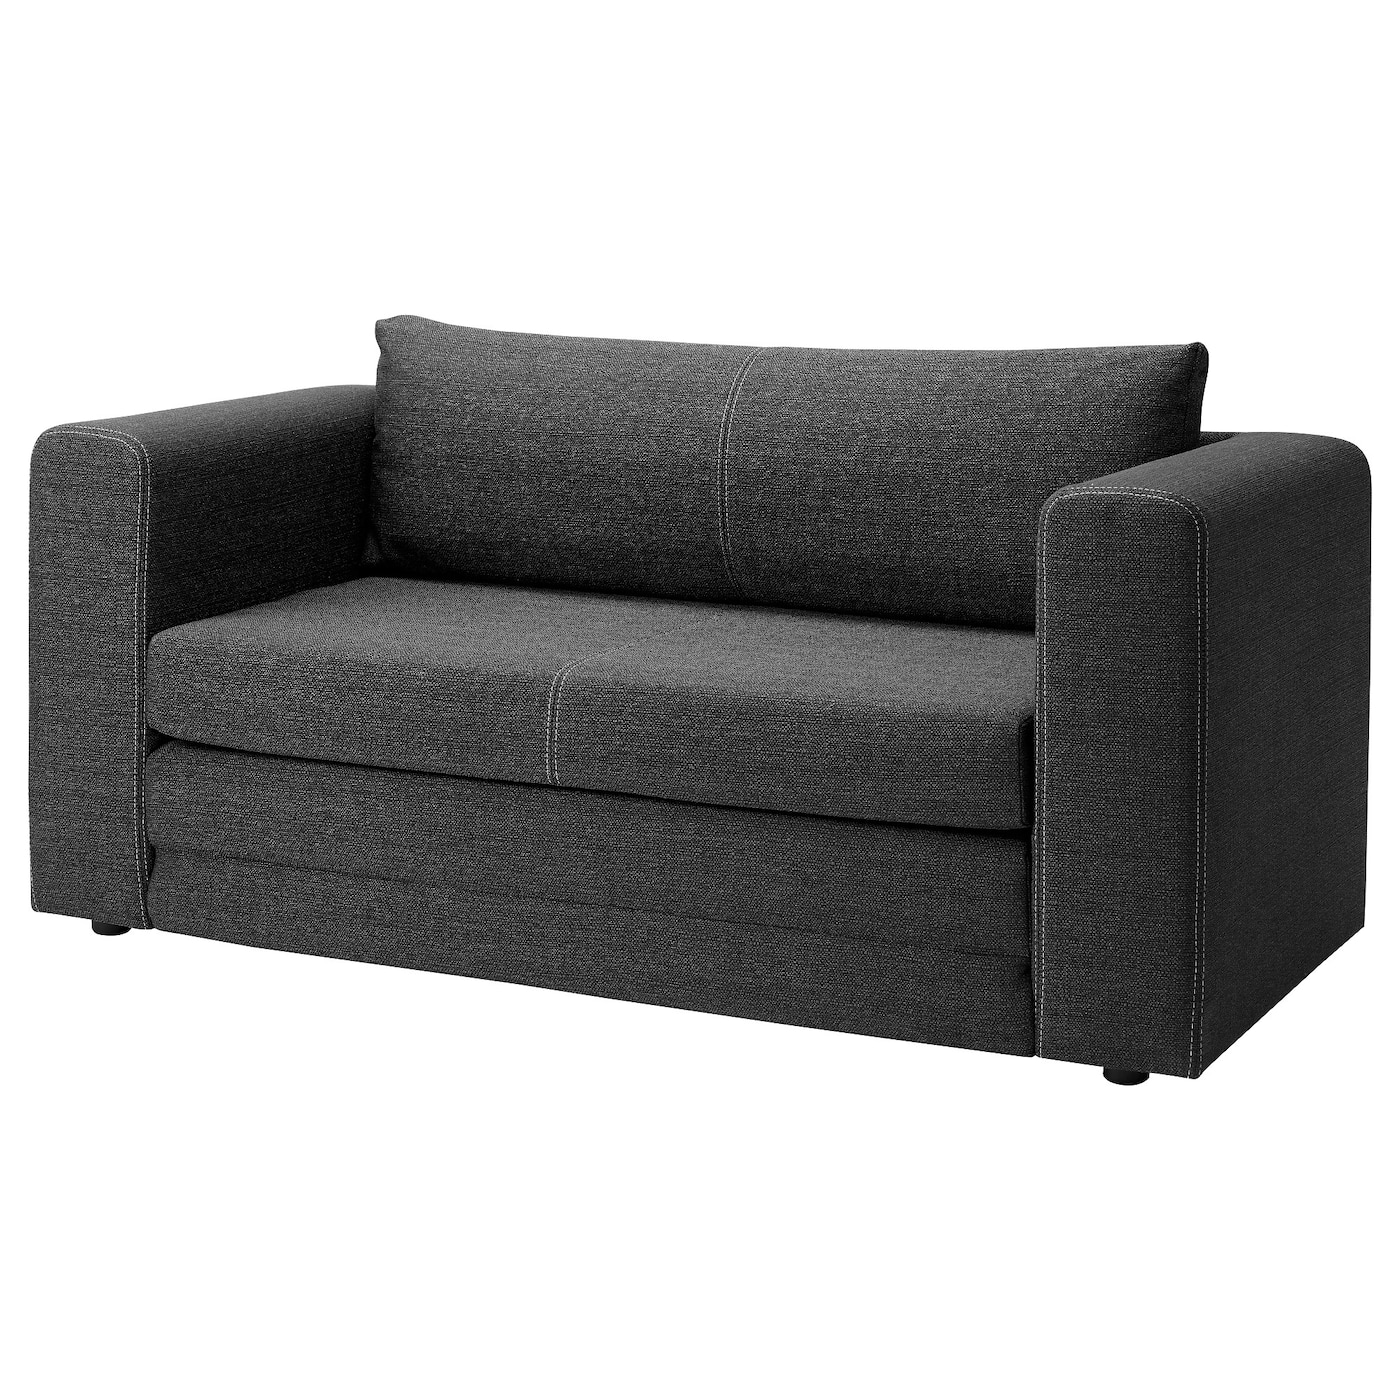 ASKEBY Two-seat sofa-bed - grey - IKEA